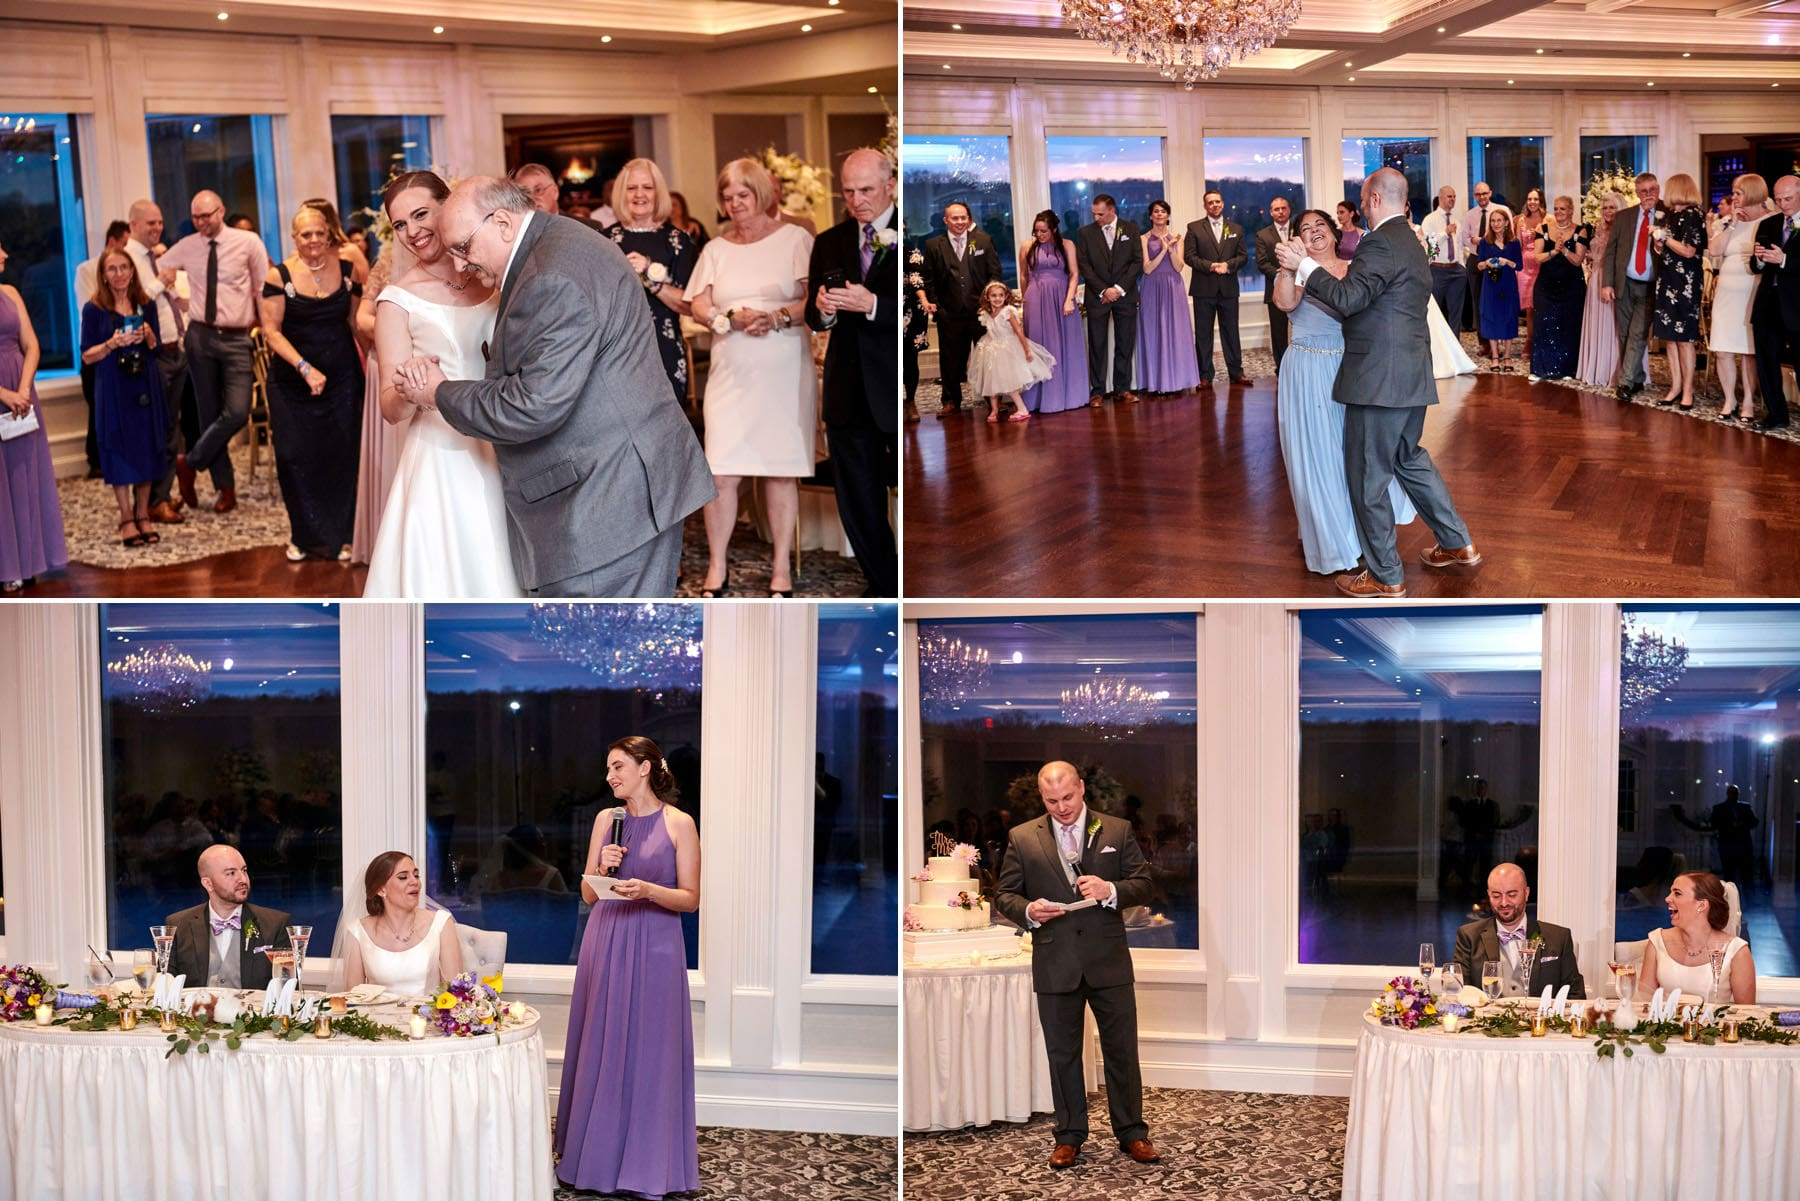 The Mill lakeside Manor wedding parent dance photos